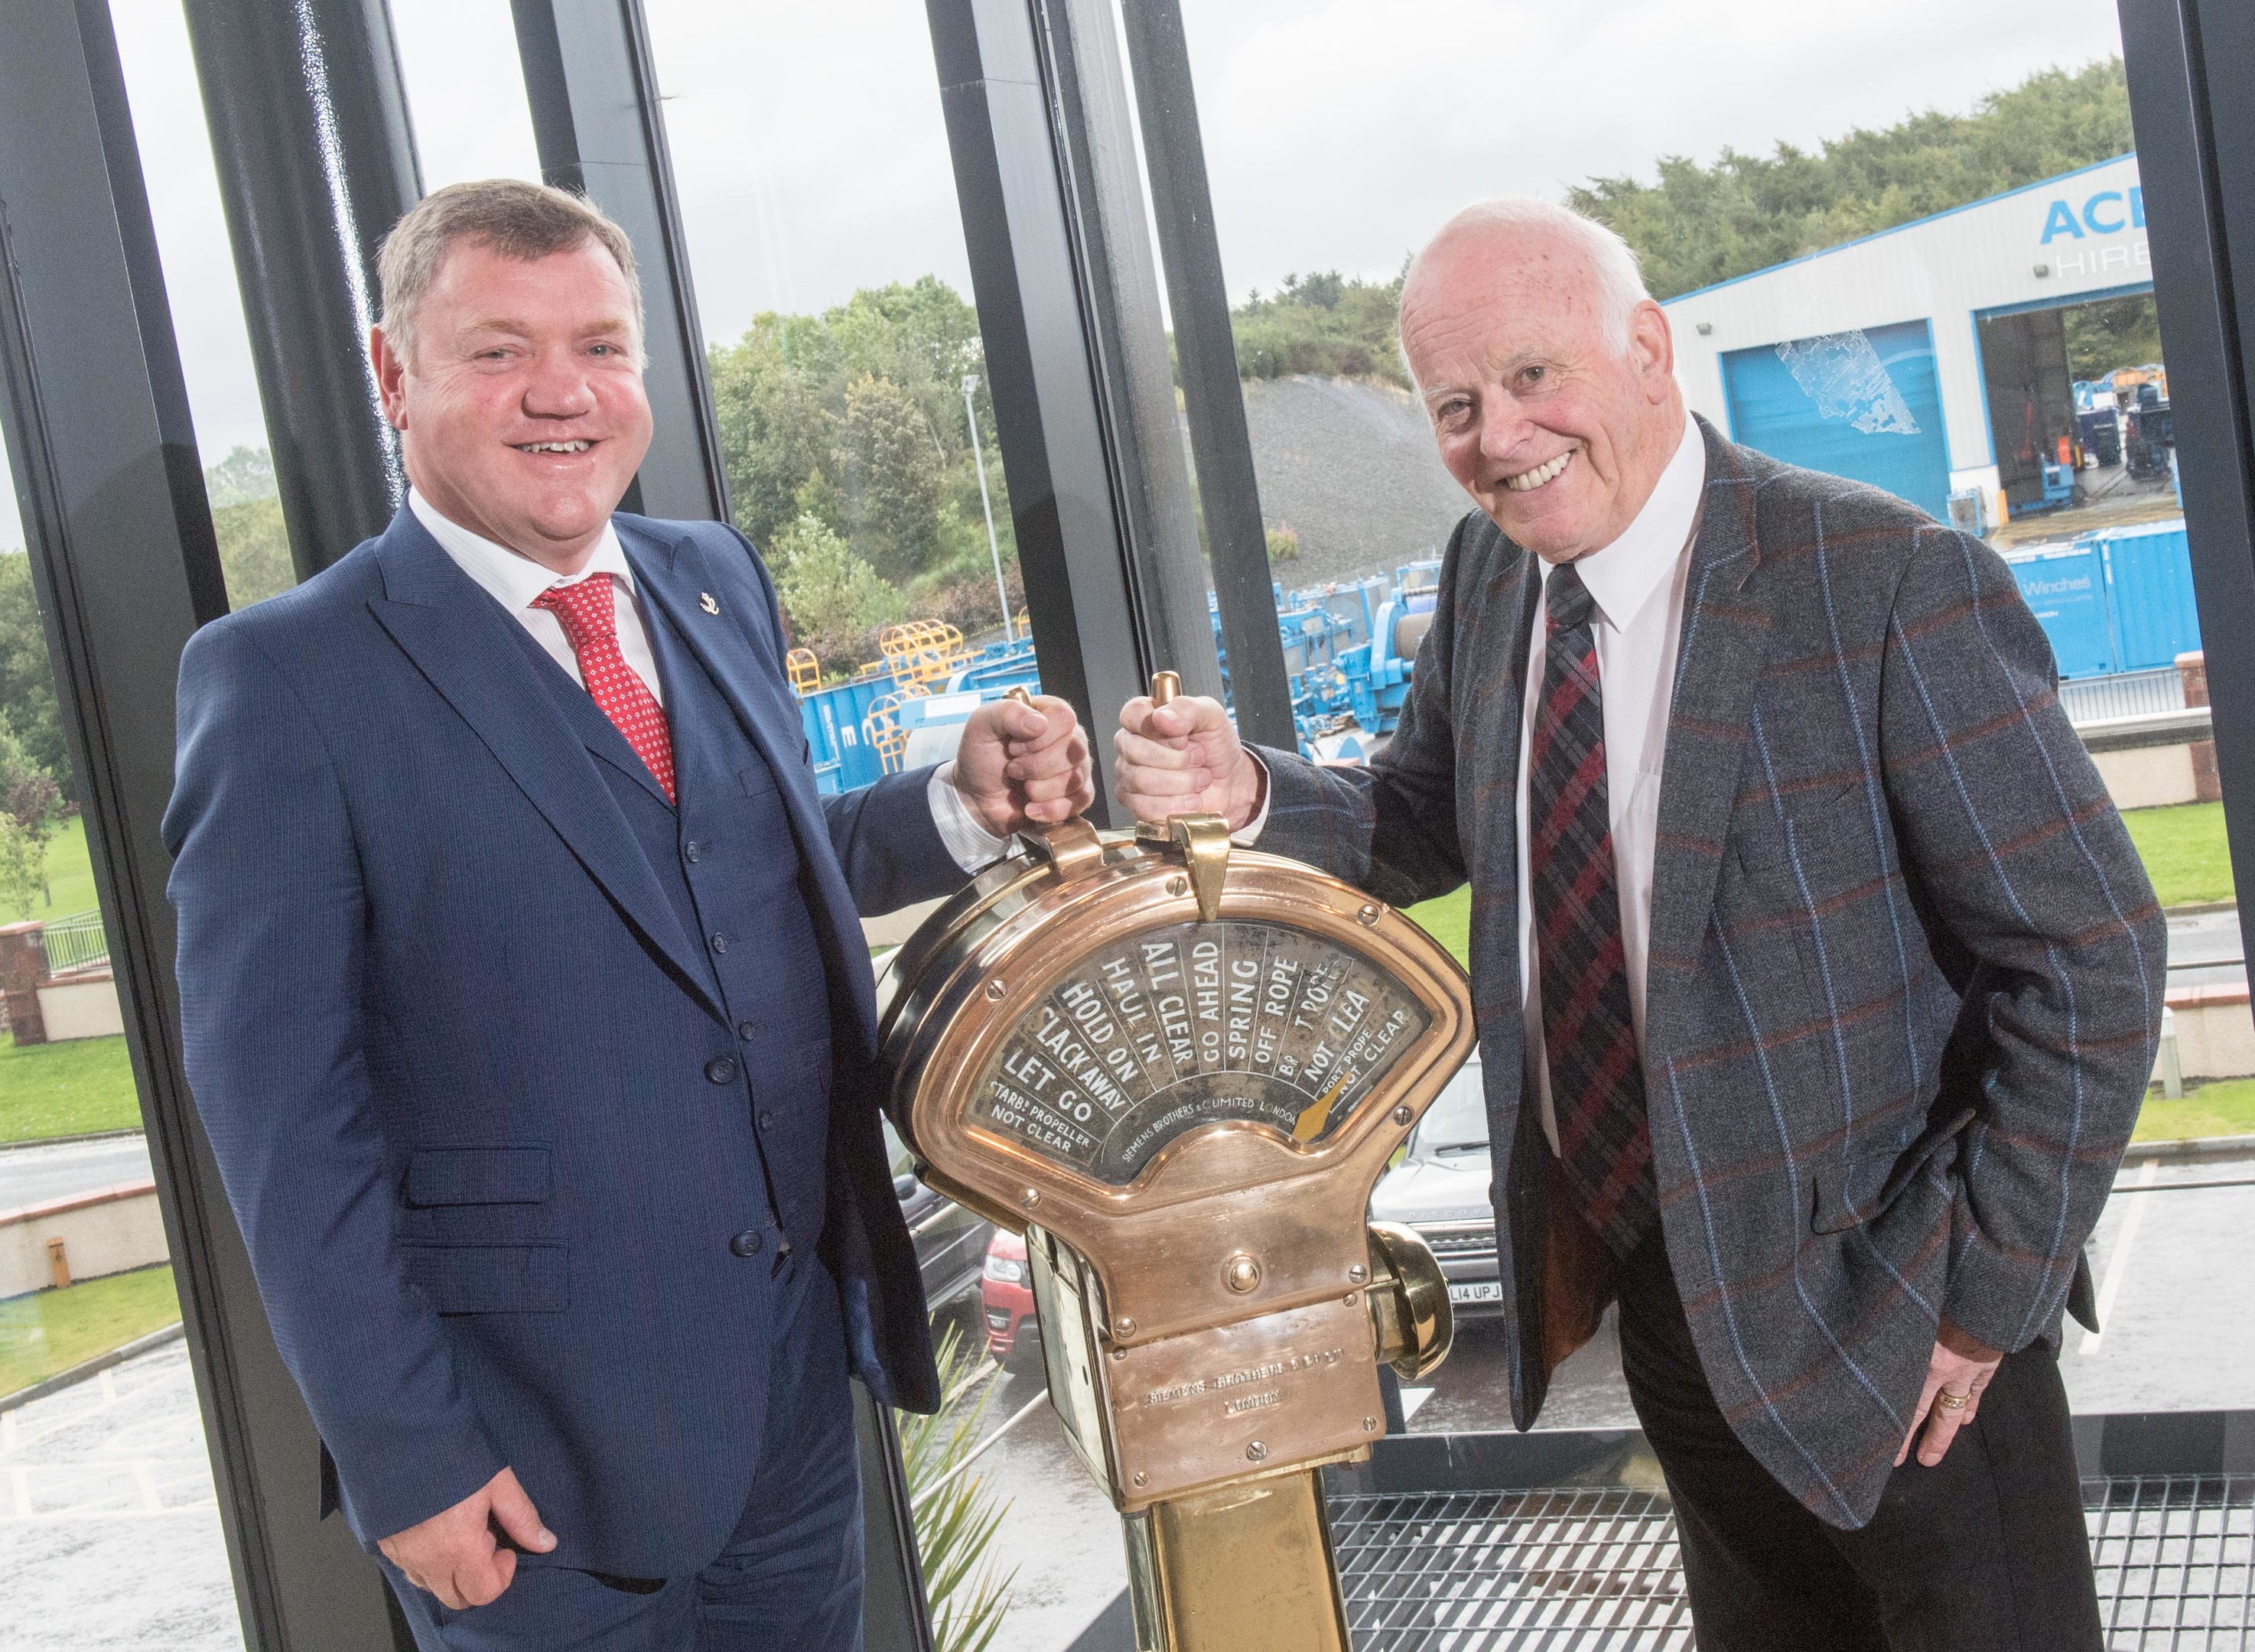 Alfie Cheyne, founder of Ace Winches (left) and Jim Milne, chairman and managing director of Balmoral Group, announcing their partnership in 2017.